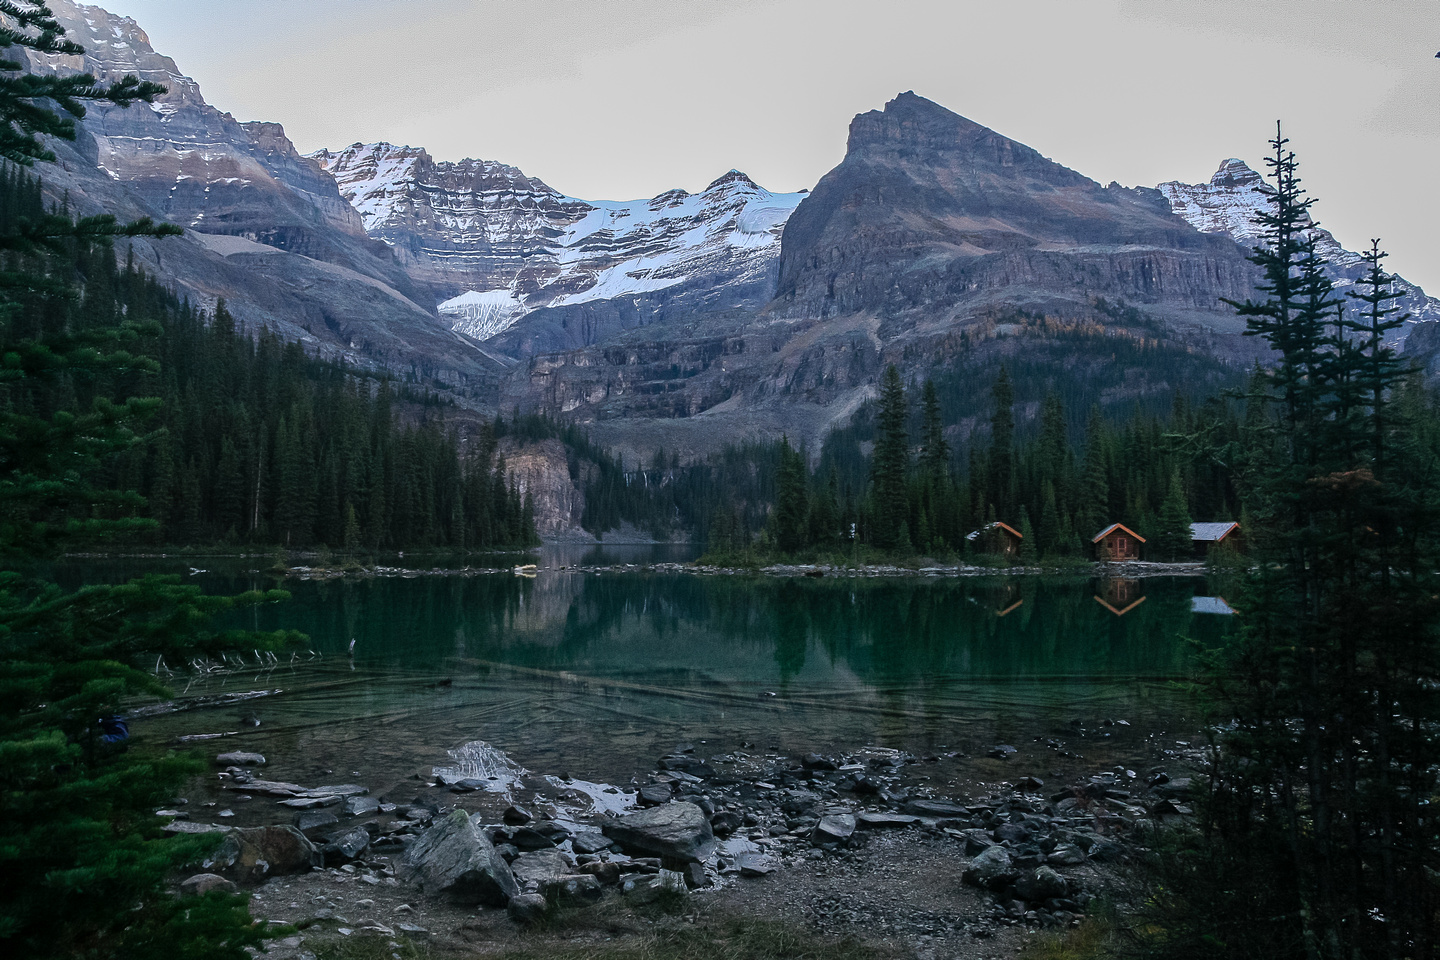 The morning started off quite cool but that didn't hurt the views at Lake O'Hara.